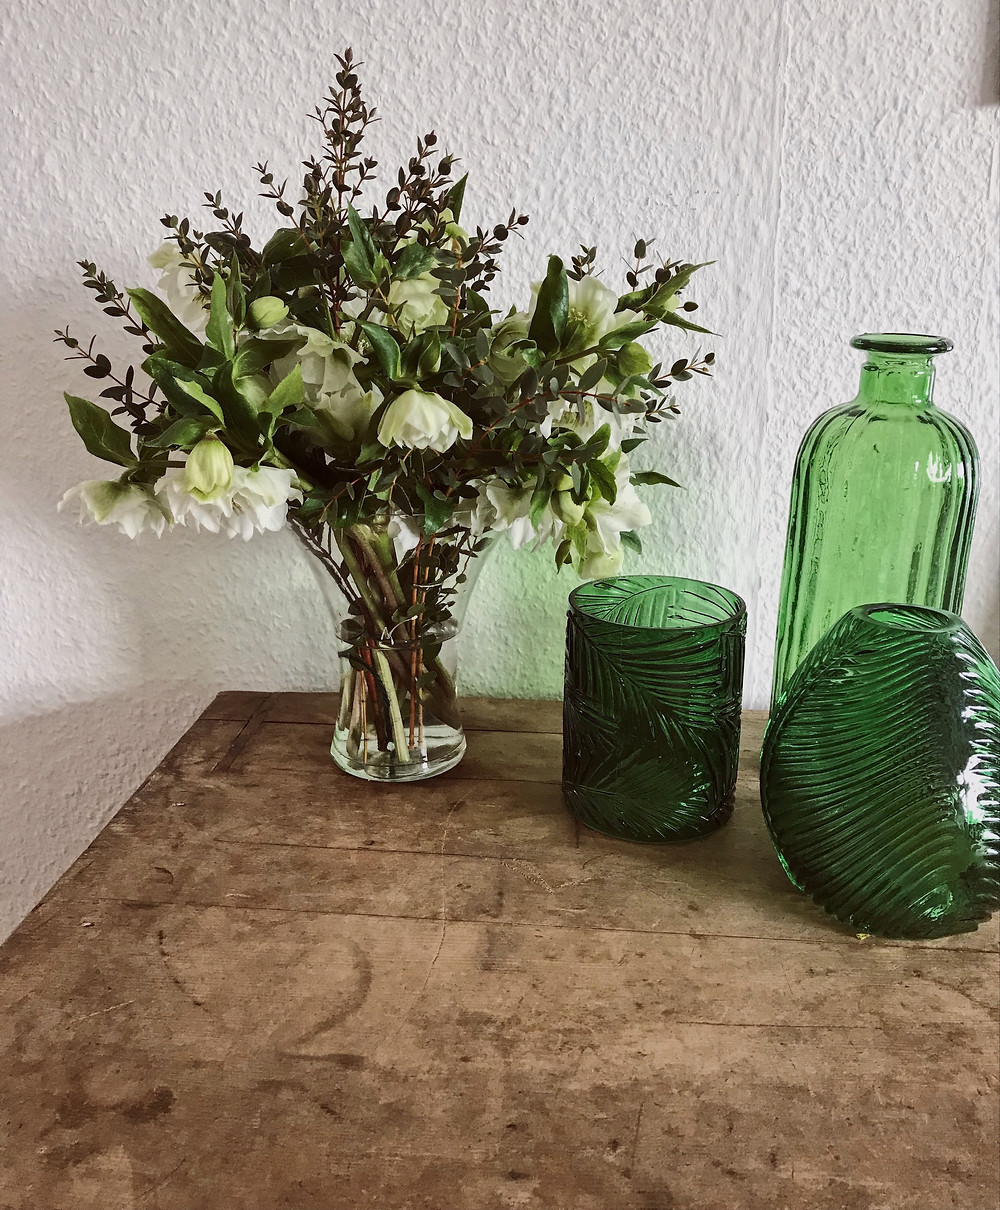 Natural cream and green flowers and foliage vase arrangement displayed with green bottles and containers